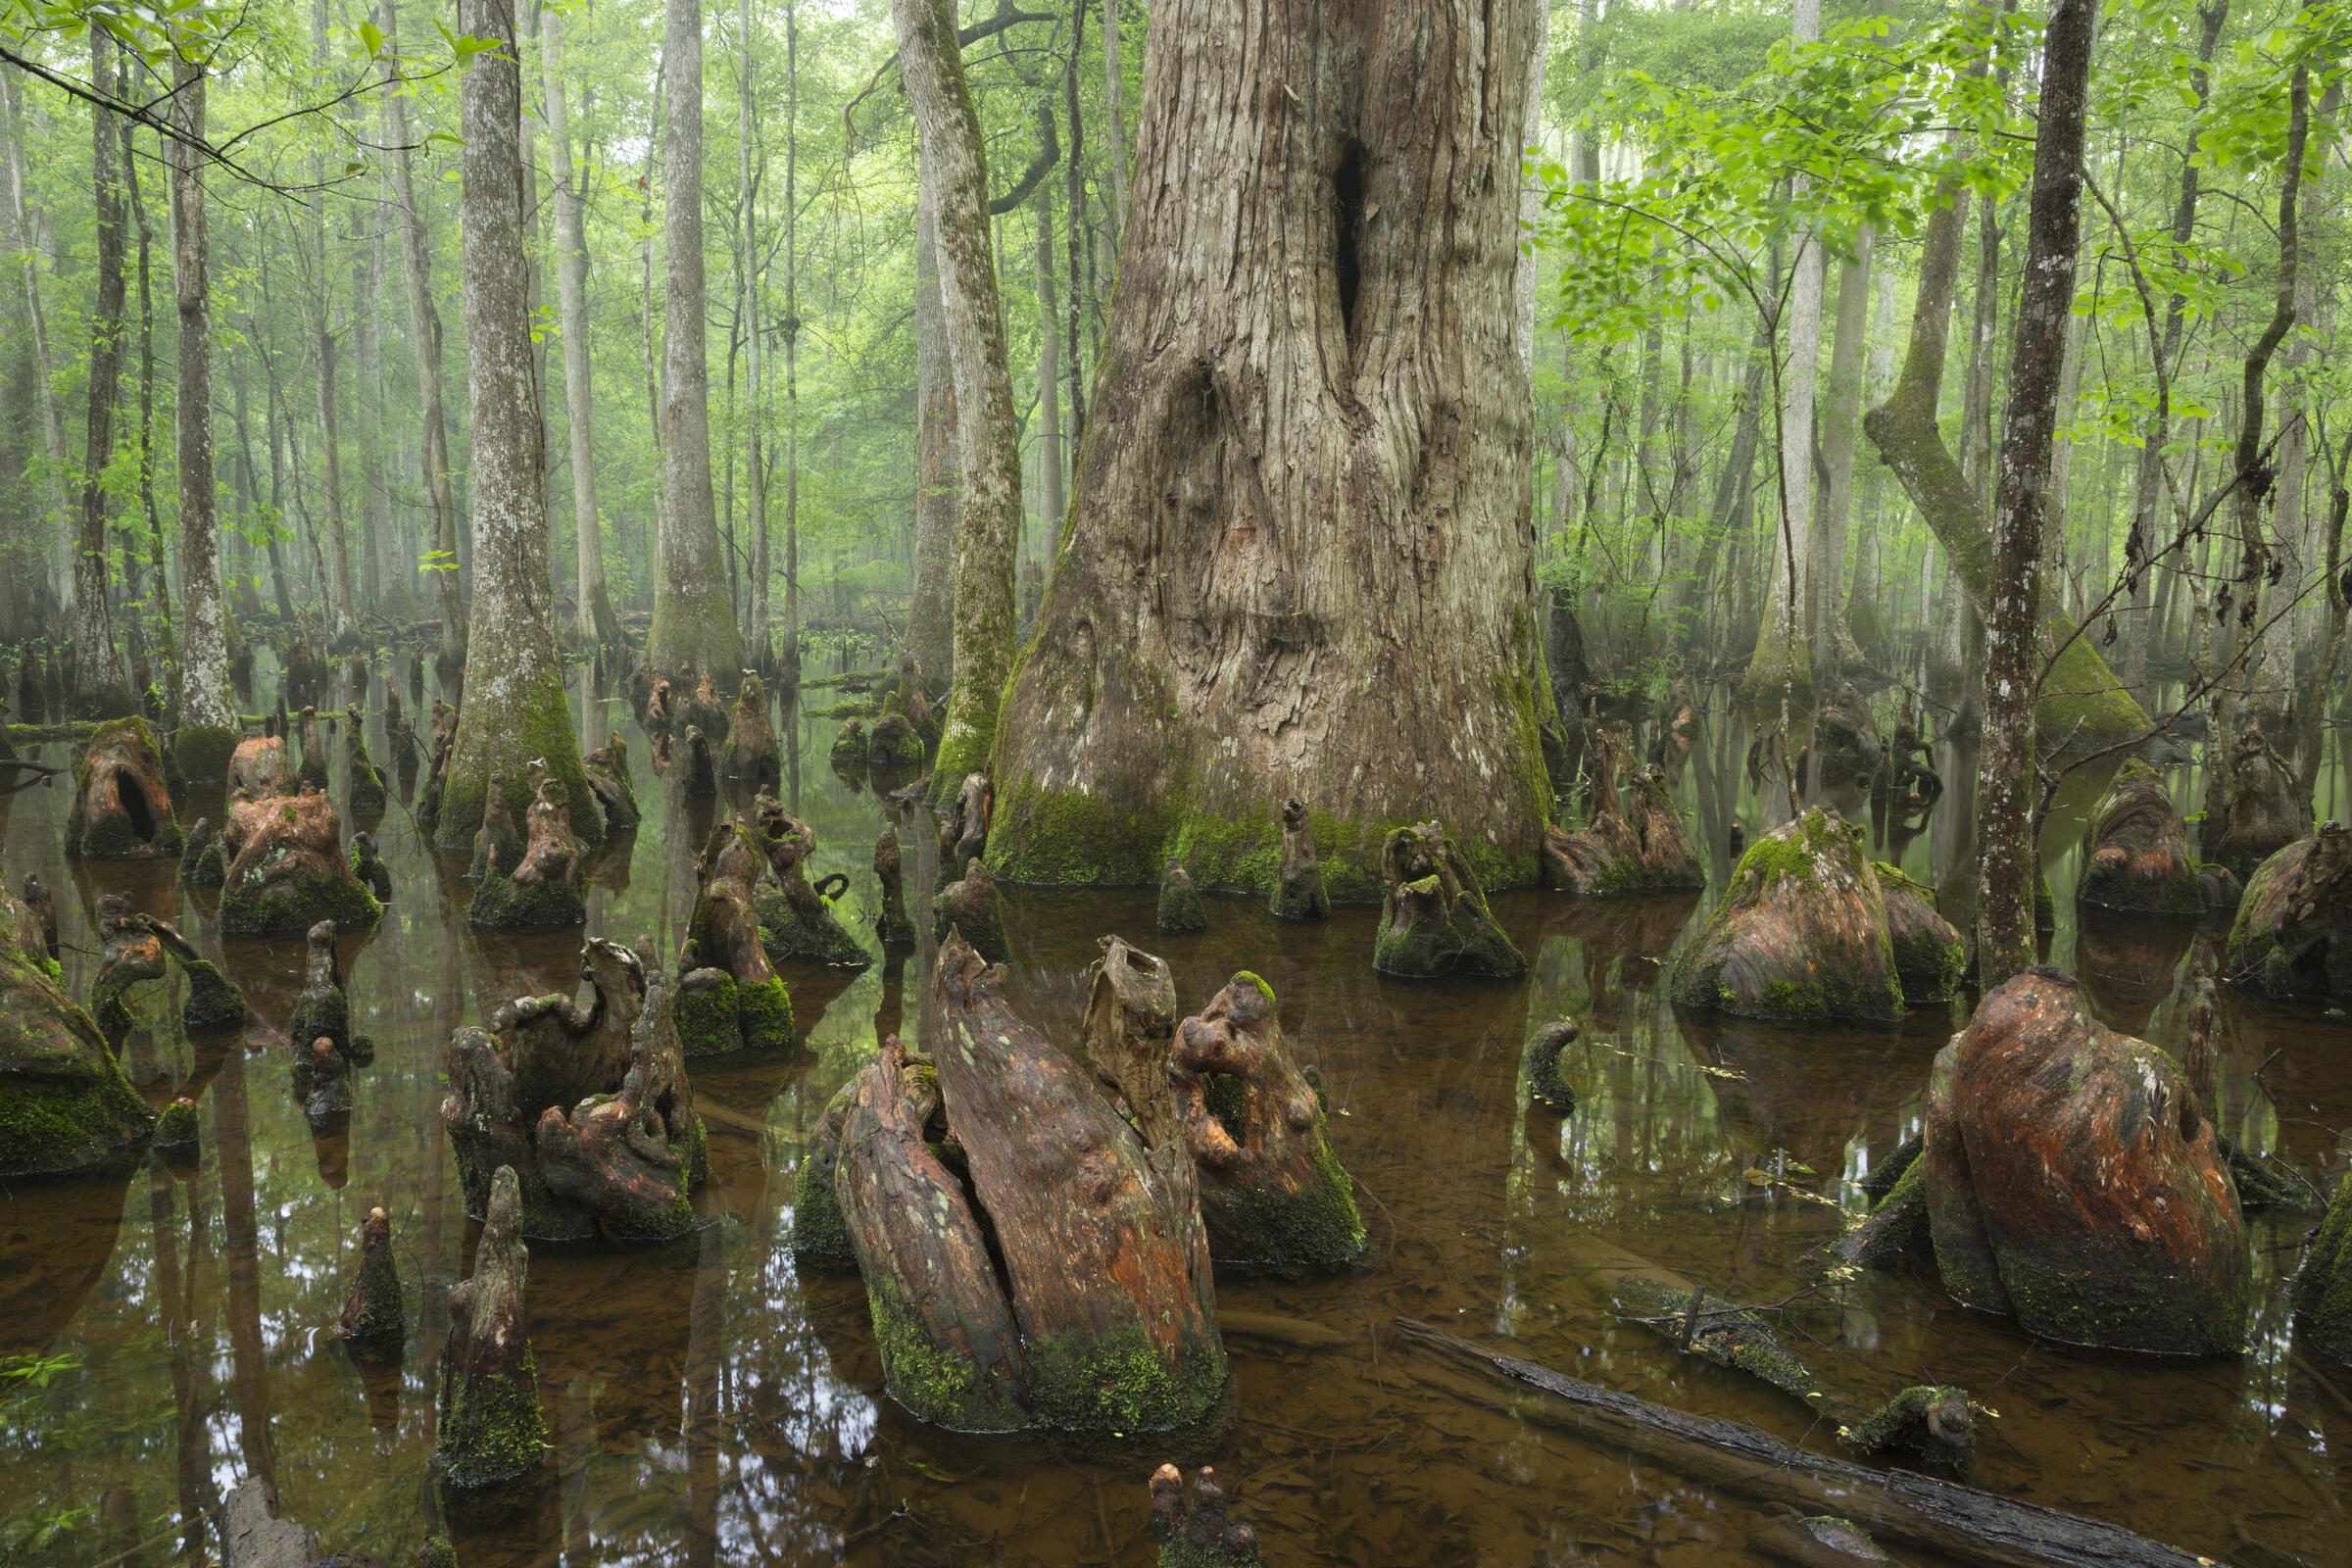 Cypress knees emerge, in all their various shapes from the shallow water of Beidler Forest. Full green leaves blanket above allowing bits of sun to shine down.